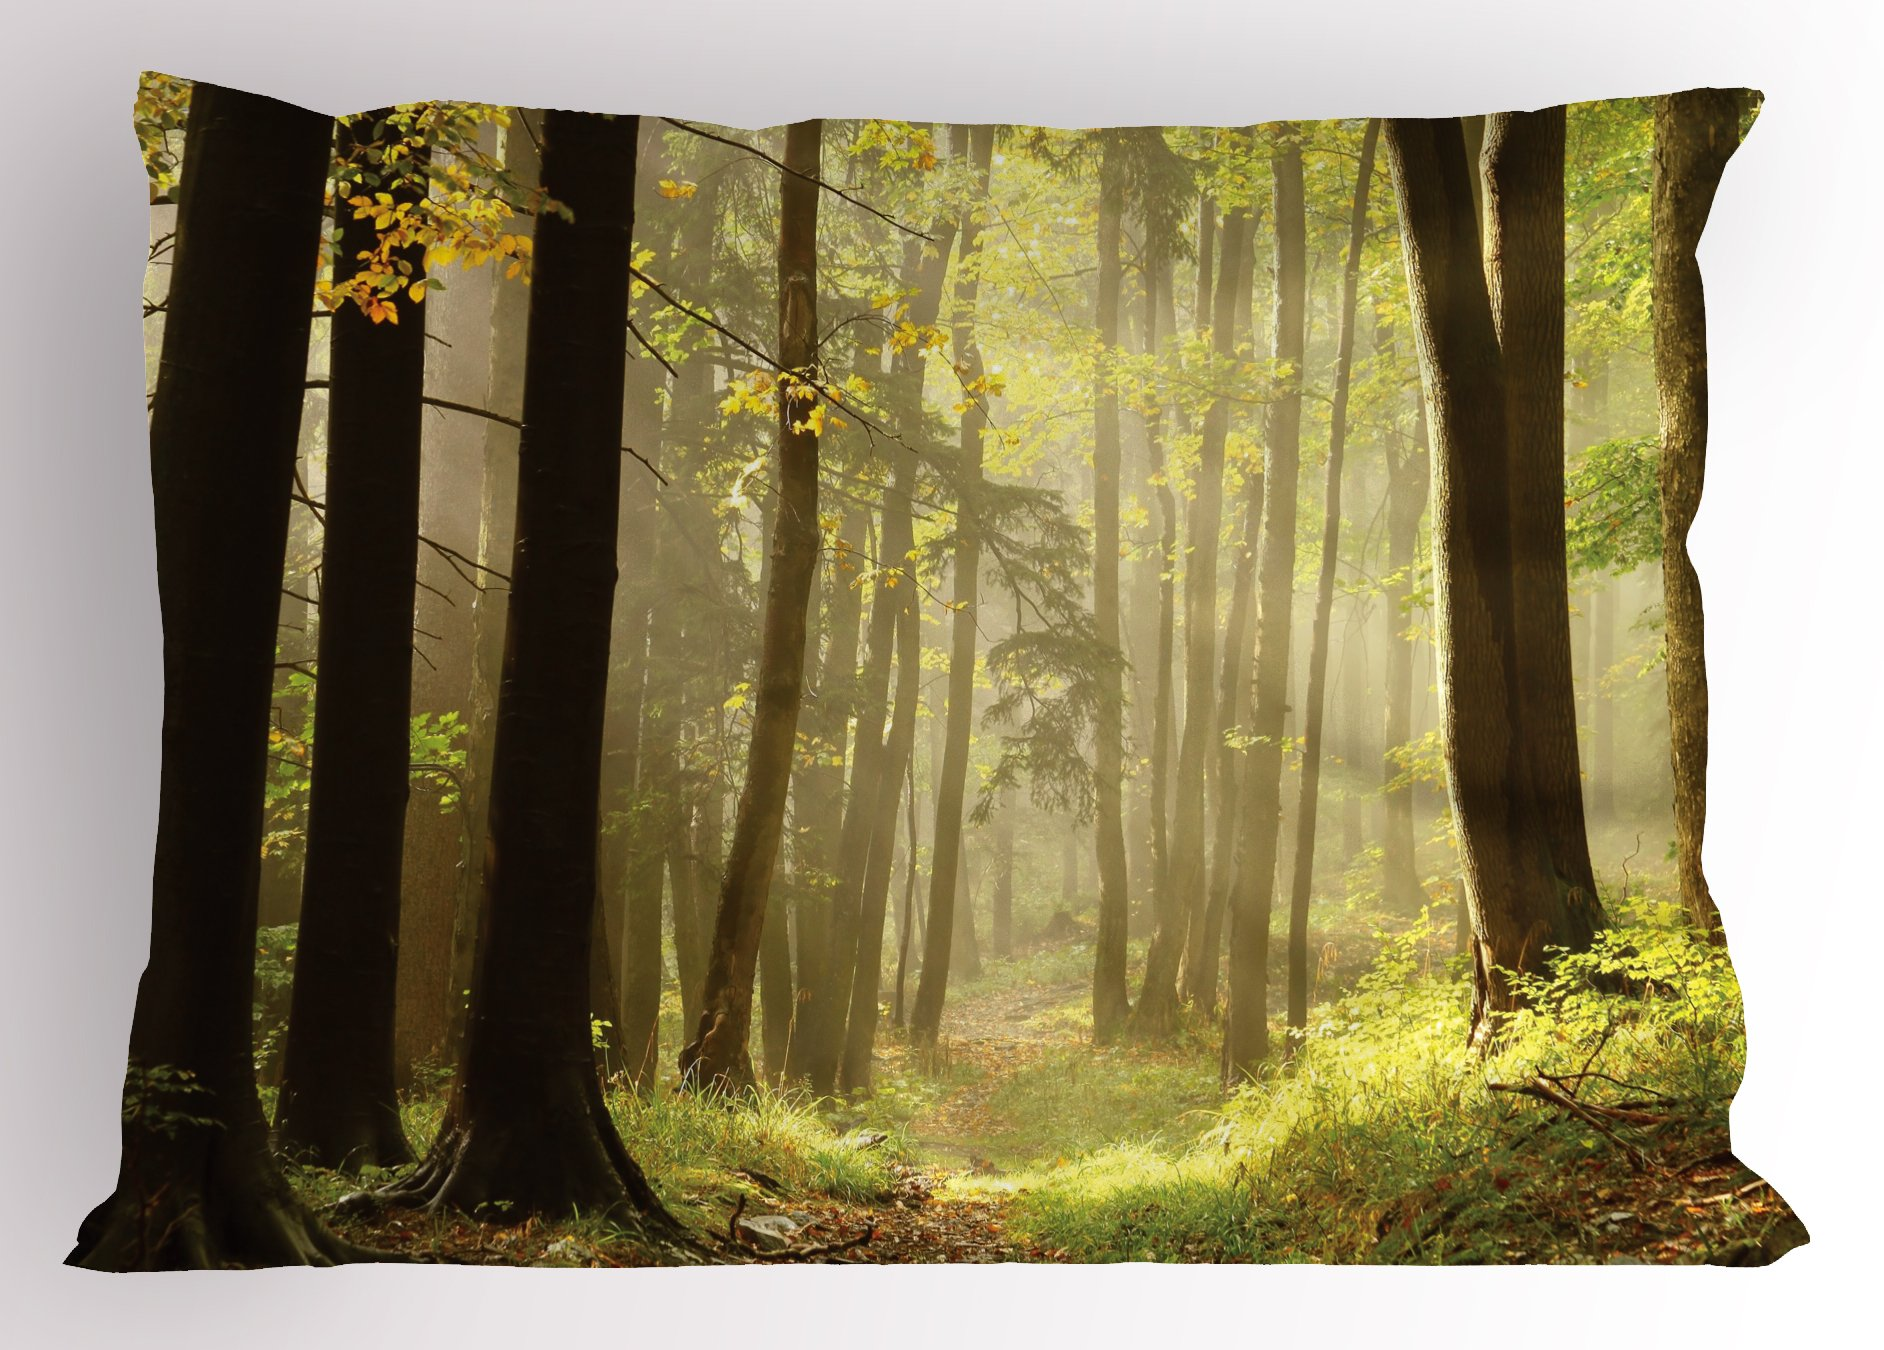 Lunarable Nature Pillow Sham, Misty Autumnal Woods Natural Pathway Serene Morning Sunrise Picture, Decorative Standard King Size Printed Pillowcase, 36 X 20 inches, Yellow Light Green Brown by Lunarable (Image #1)